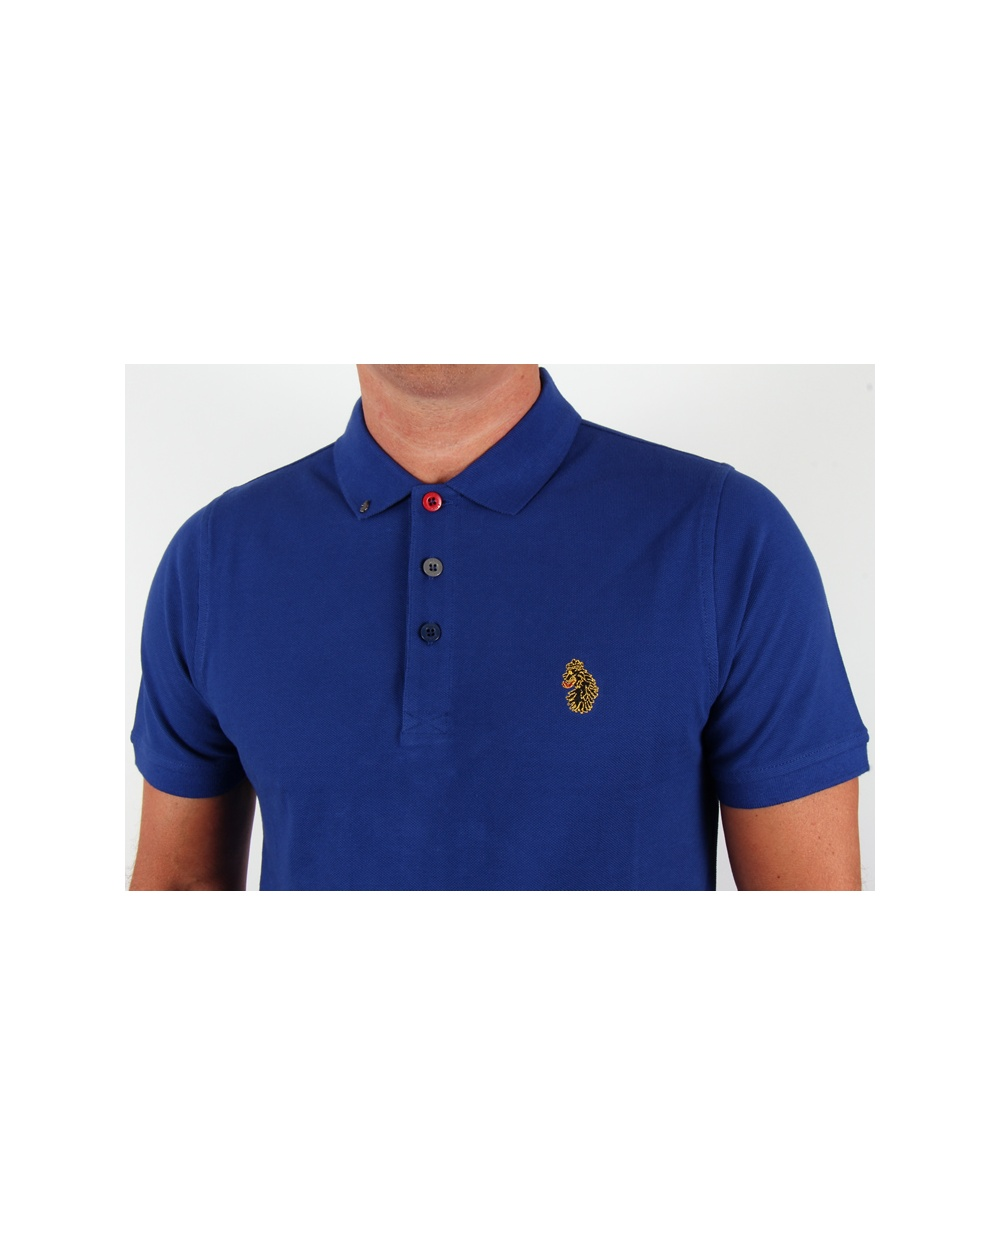 Luke williams polo shirt blue luke 1977 polo shirt mens for Luke donald polo shirts